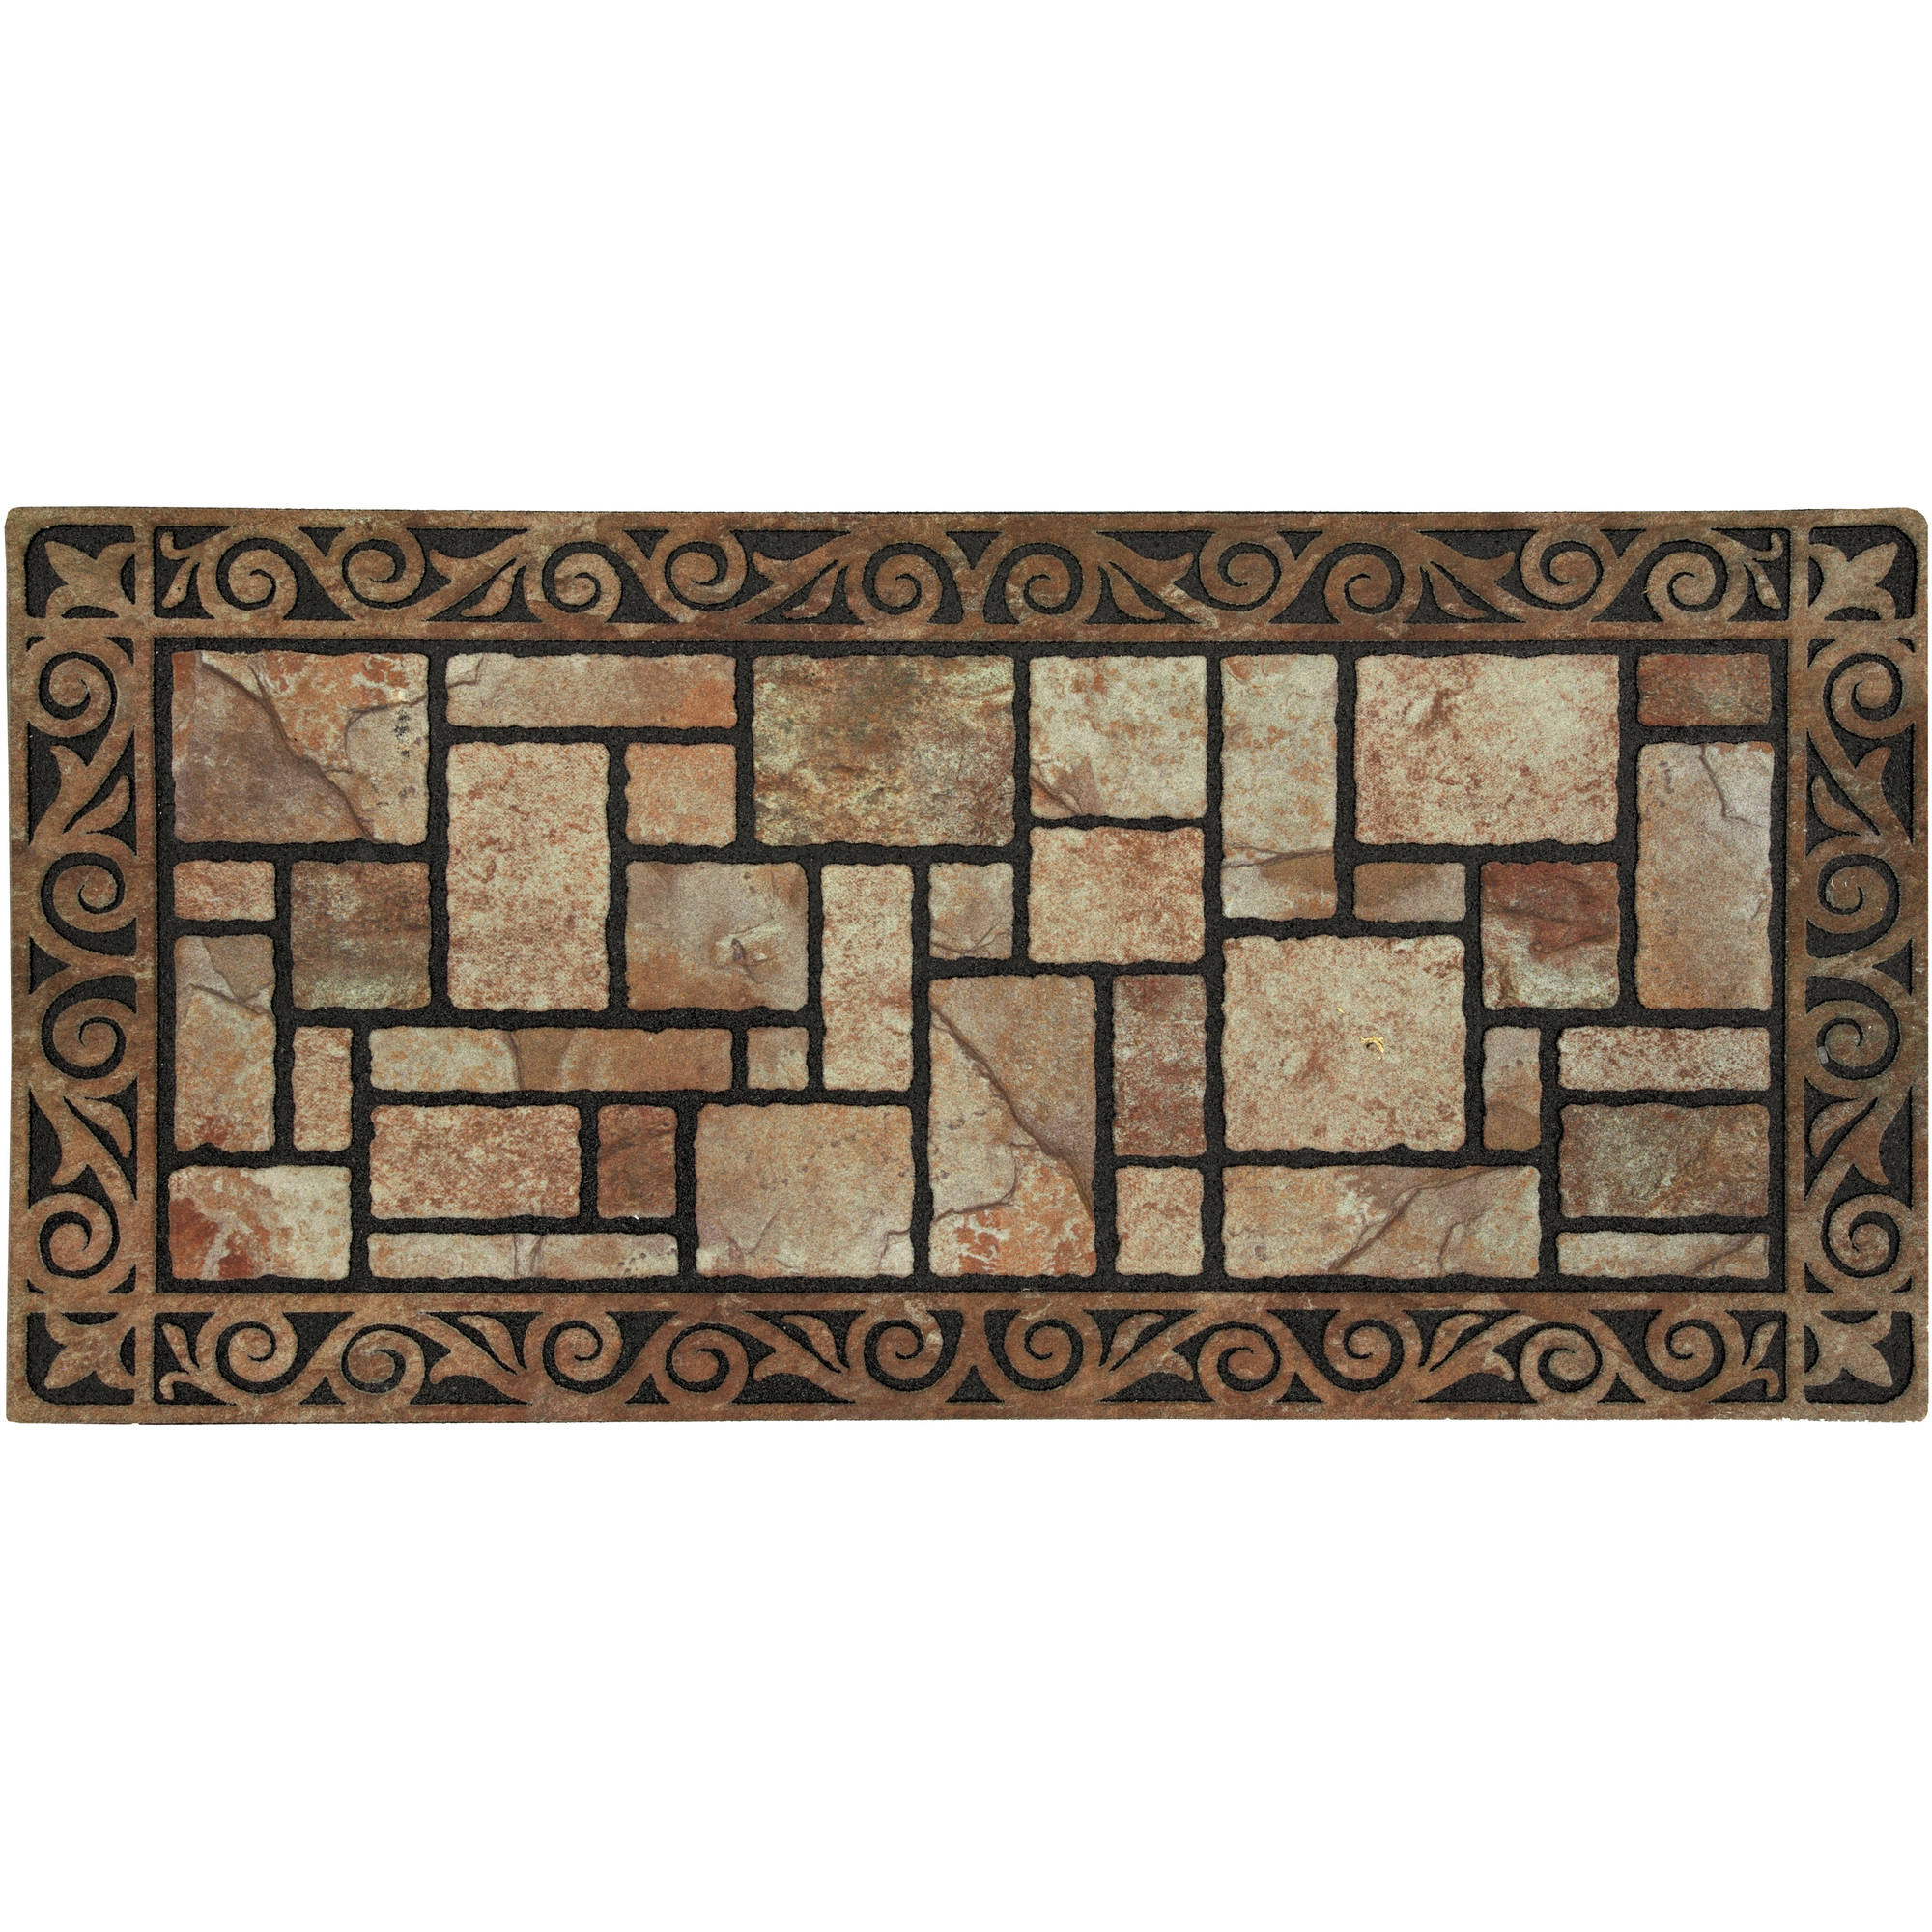 Mohawk Home Border and Pavers Doormat